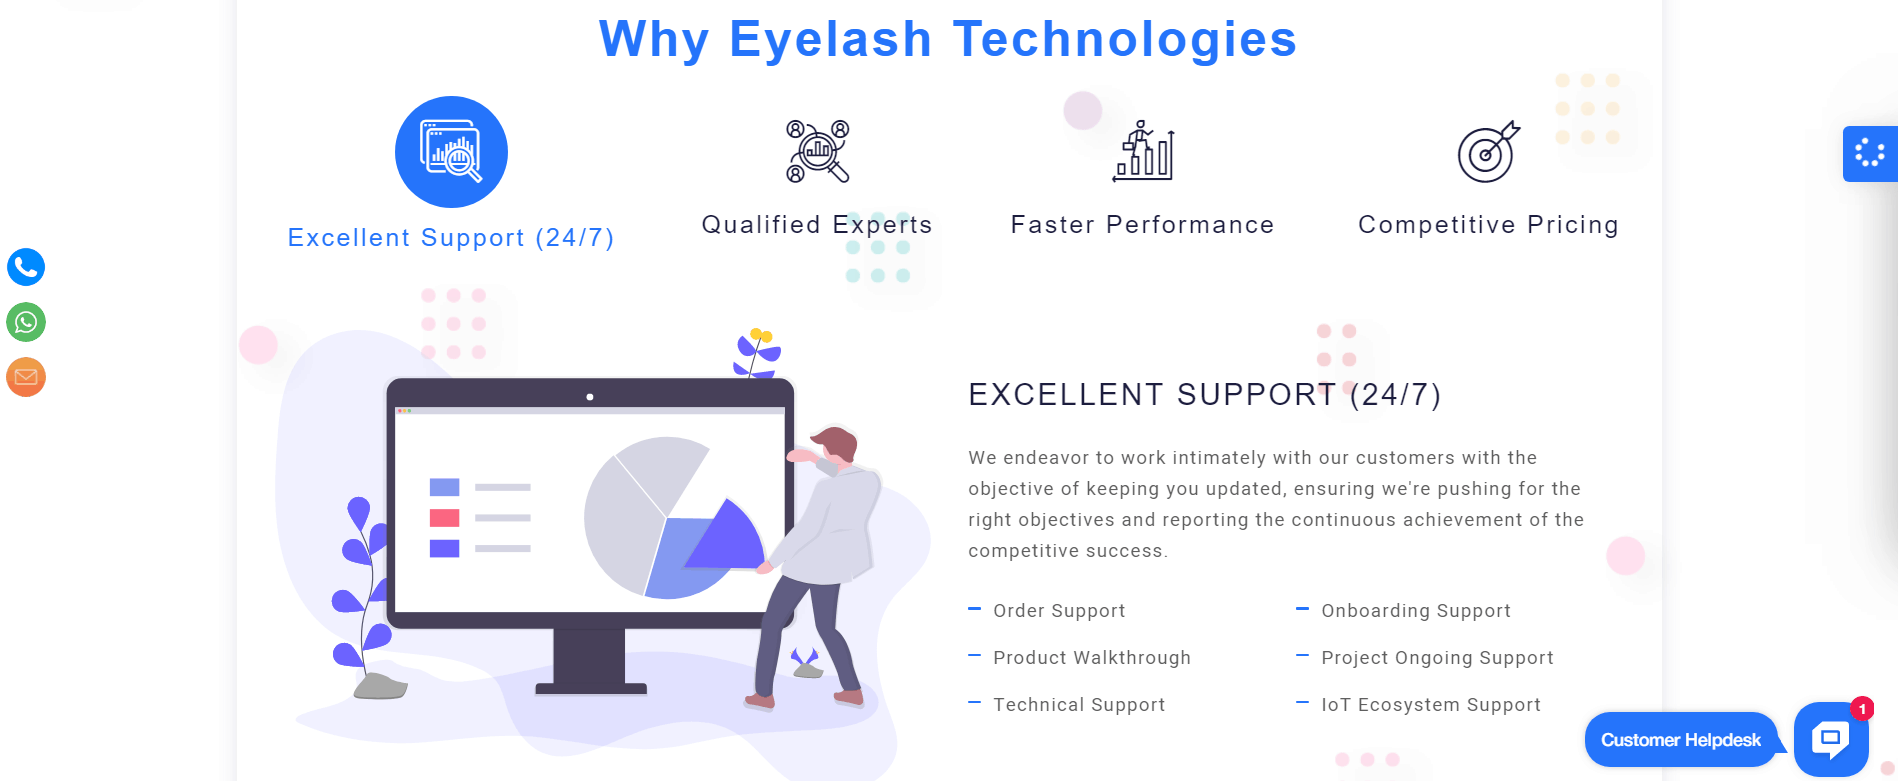 eyelash-technologies-features